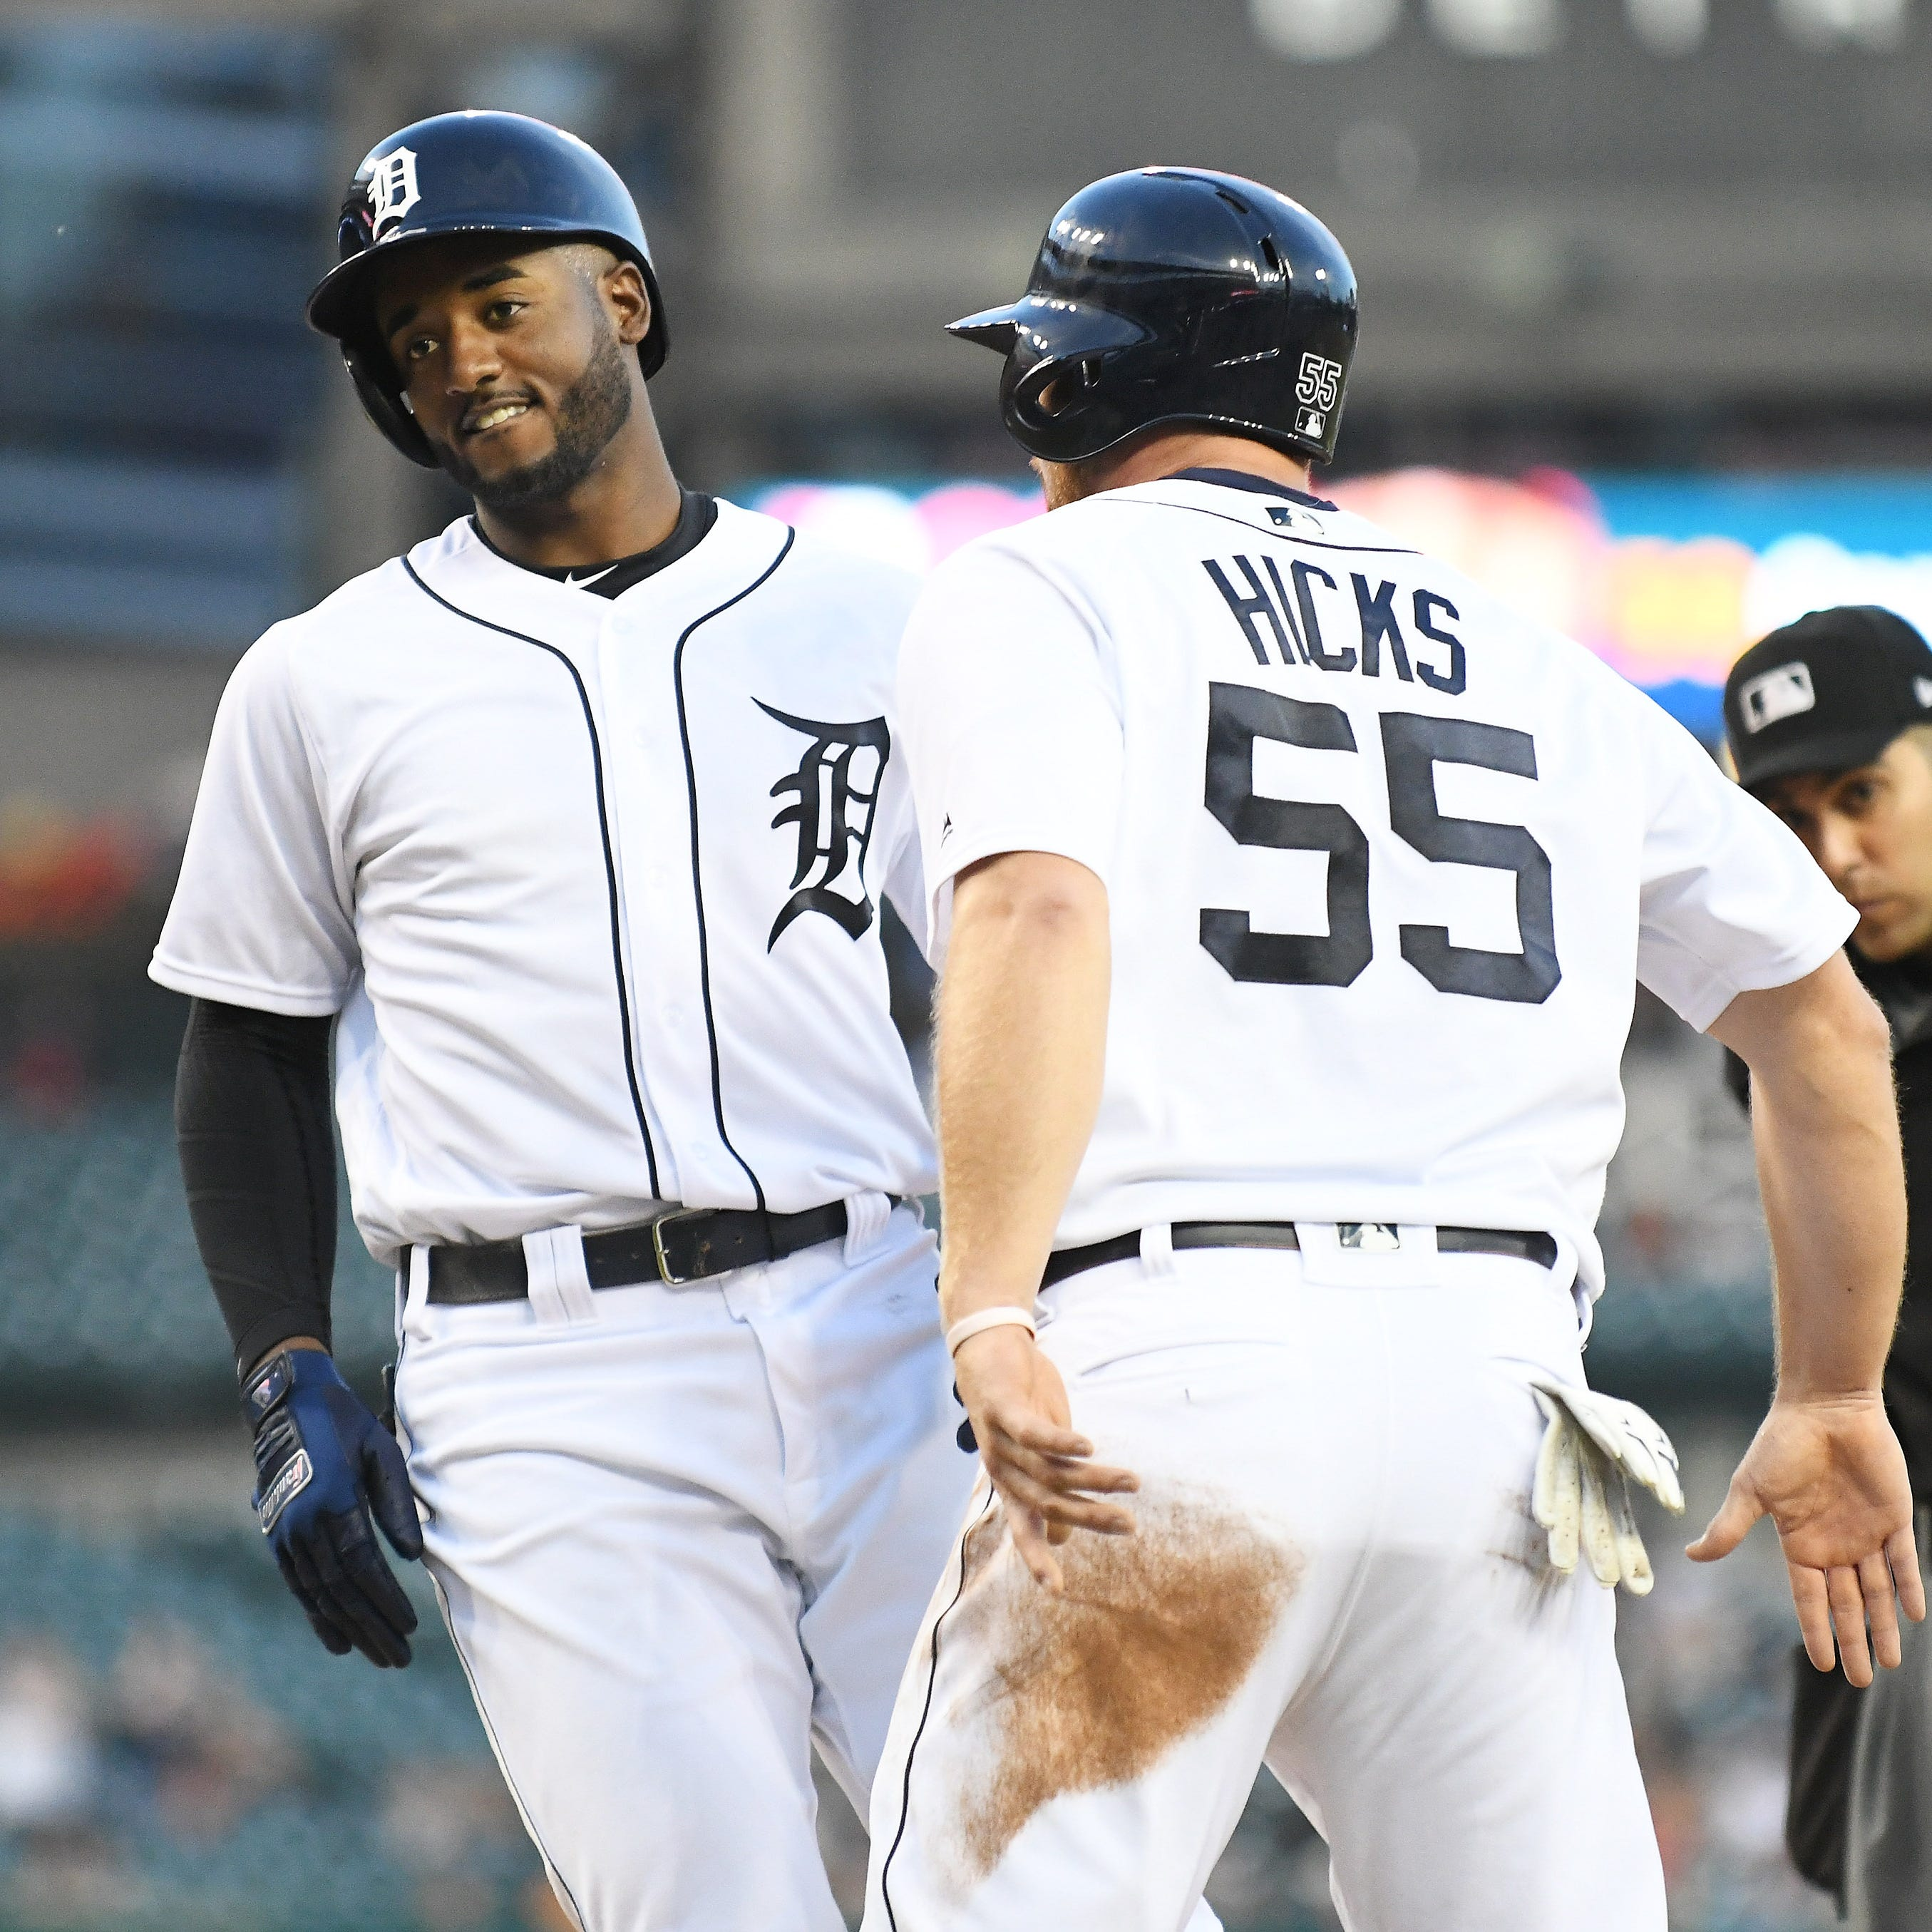 Henning: It's been a colorful rebuilding year for the Tigers